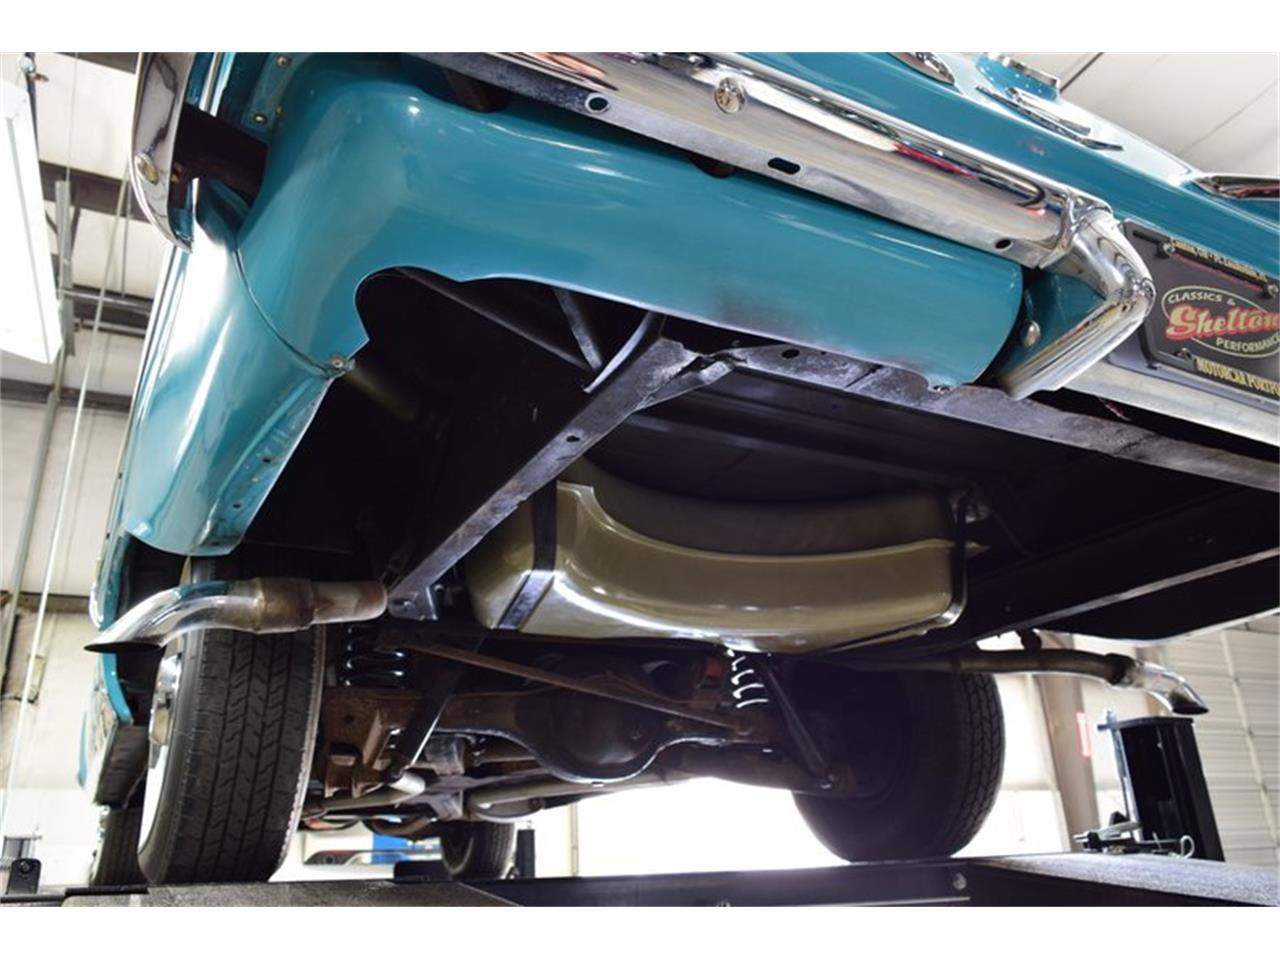 Large Picture of 1960 Chevrolet El Camino - $48,995.00 Offered by Shelton Classics & Performance - Q525